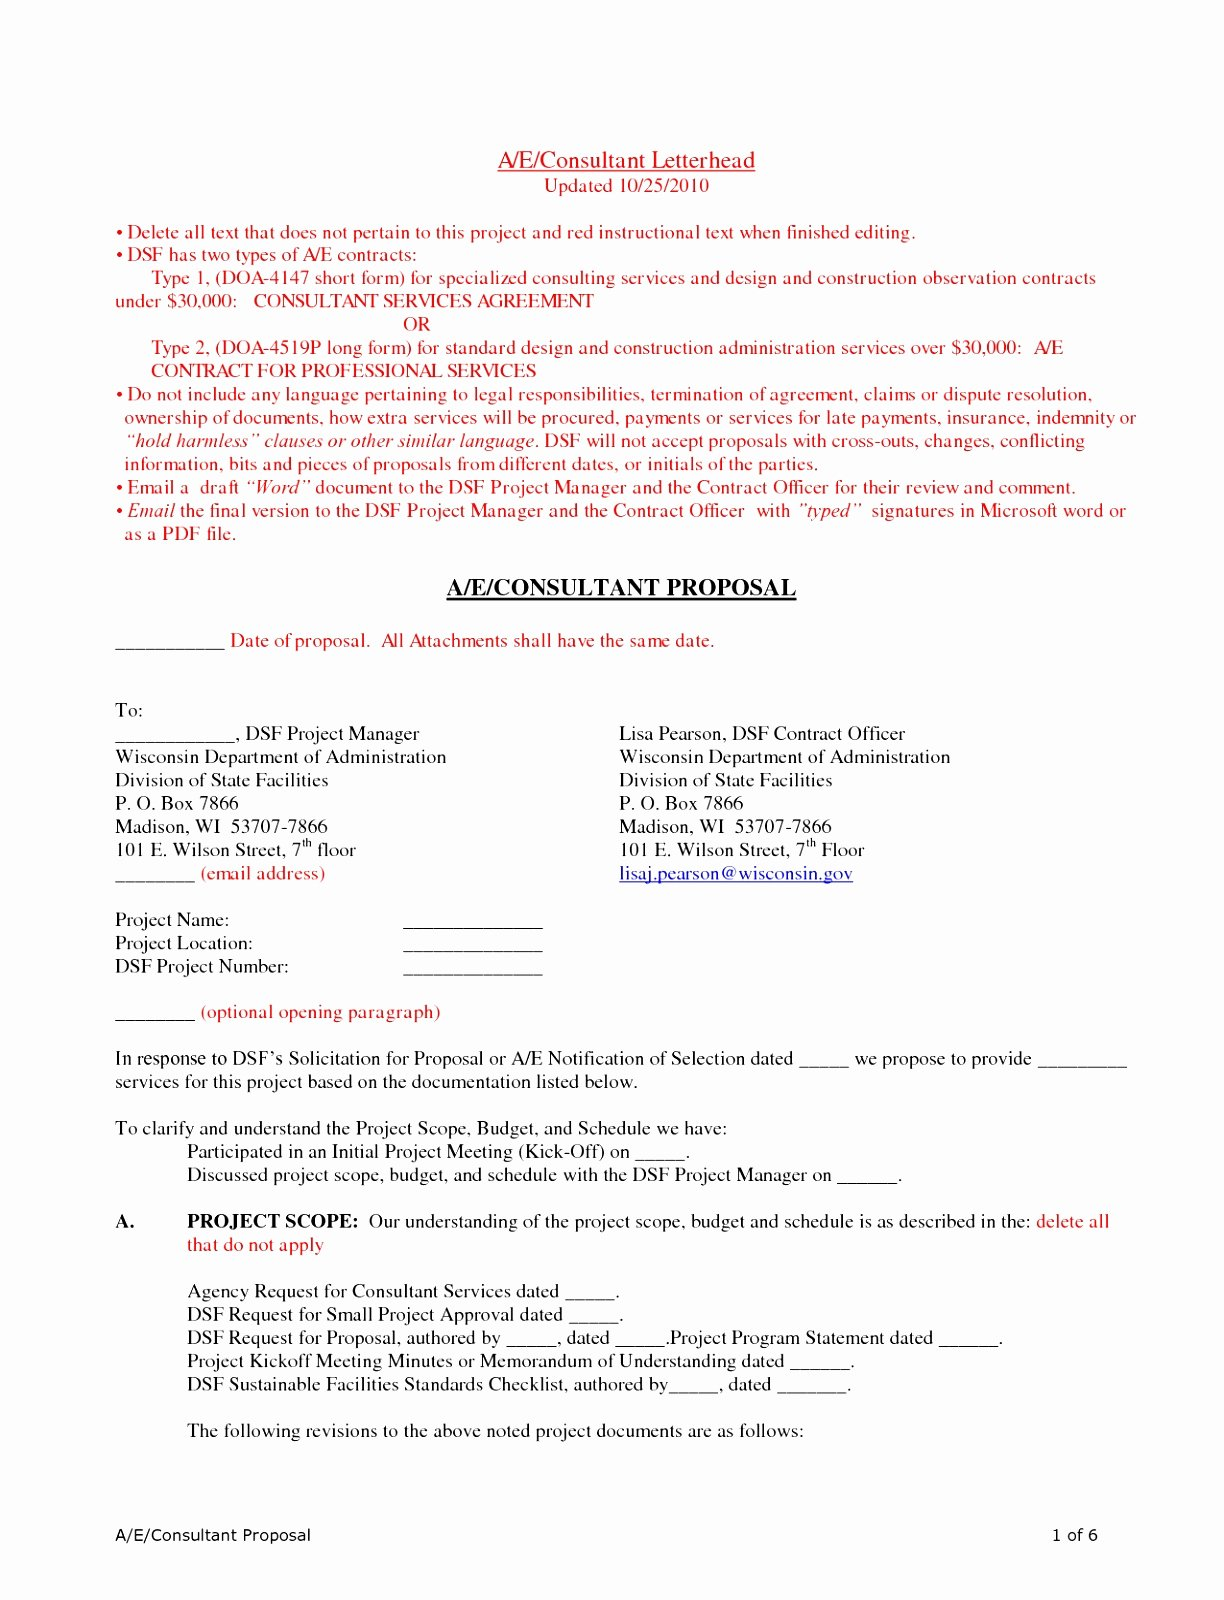 Request for Proposal Template Word Best Of 10 Request for Proposal Template Microsoft Word Iirrr